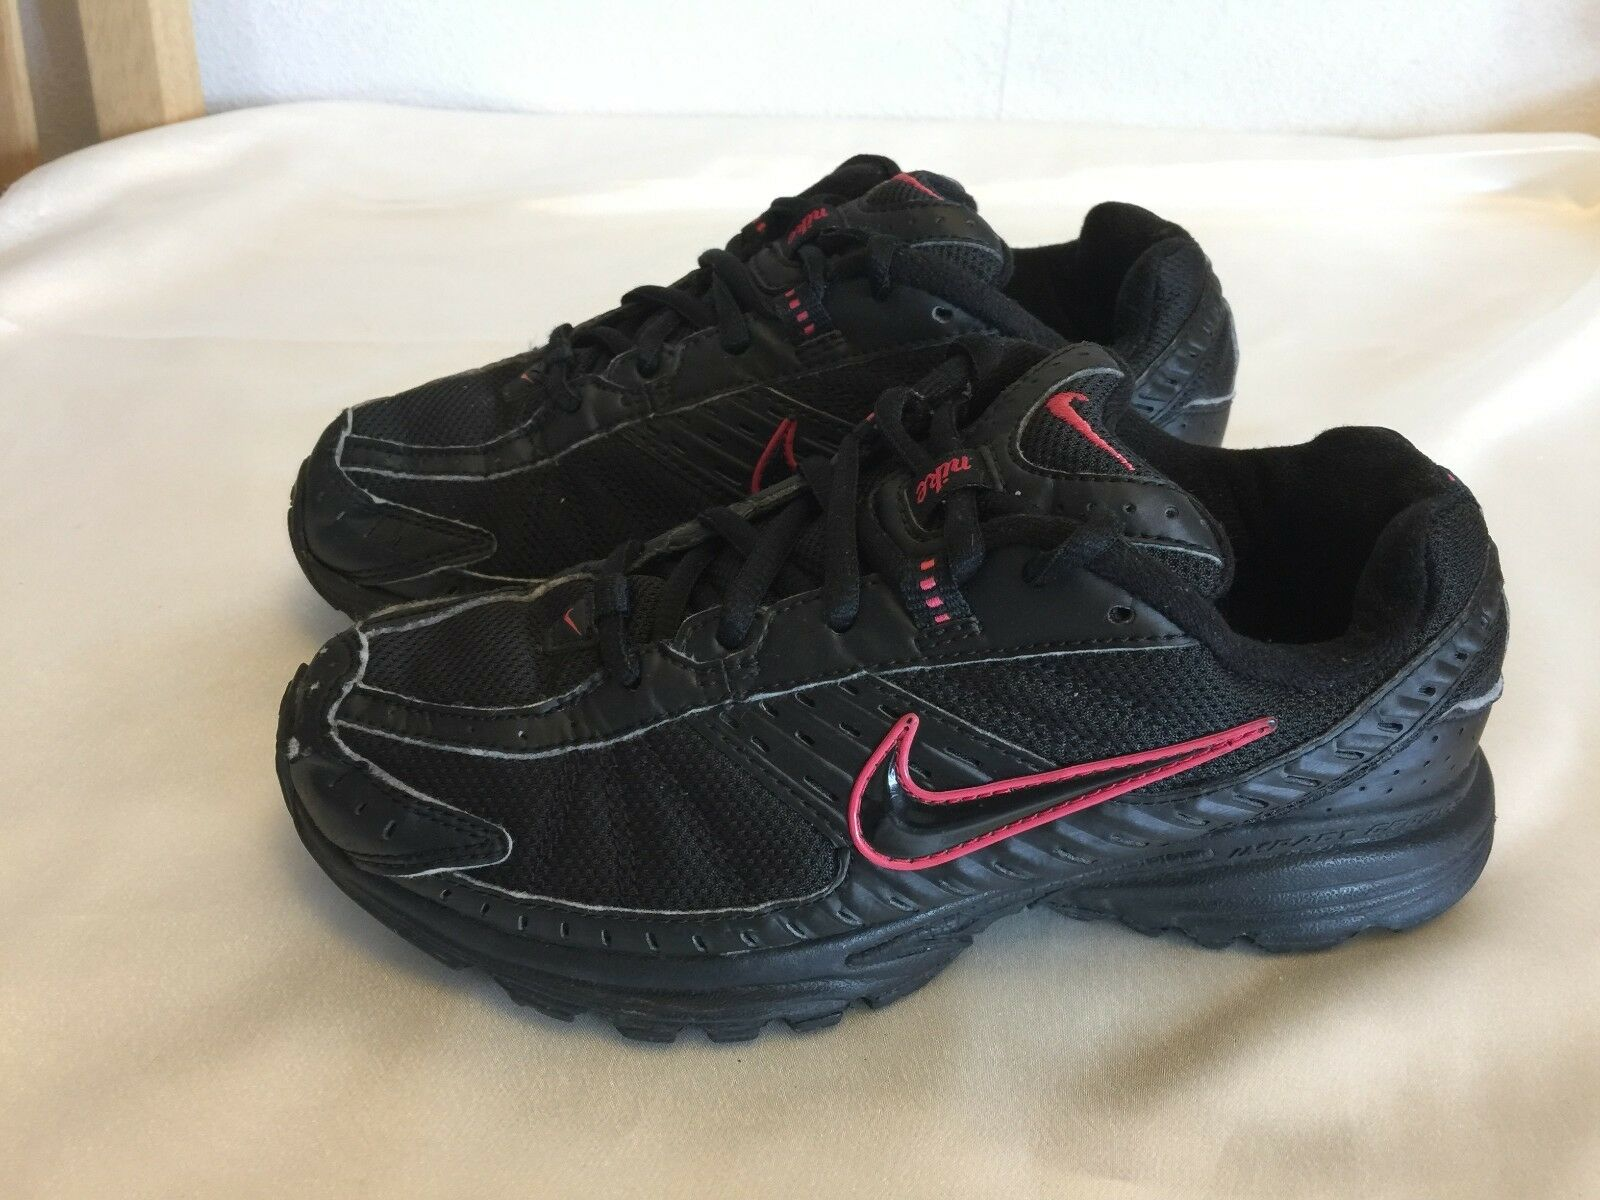 NIKE WOMEN'S GIRLS BLACK TRAINERS SIZE 4  Price reduction Casual wild